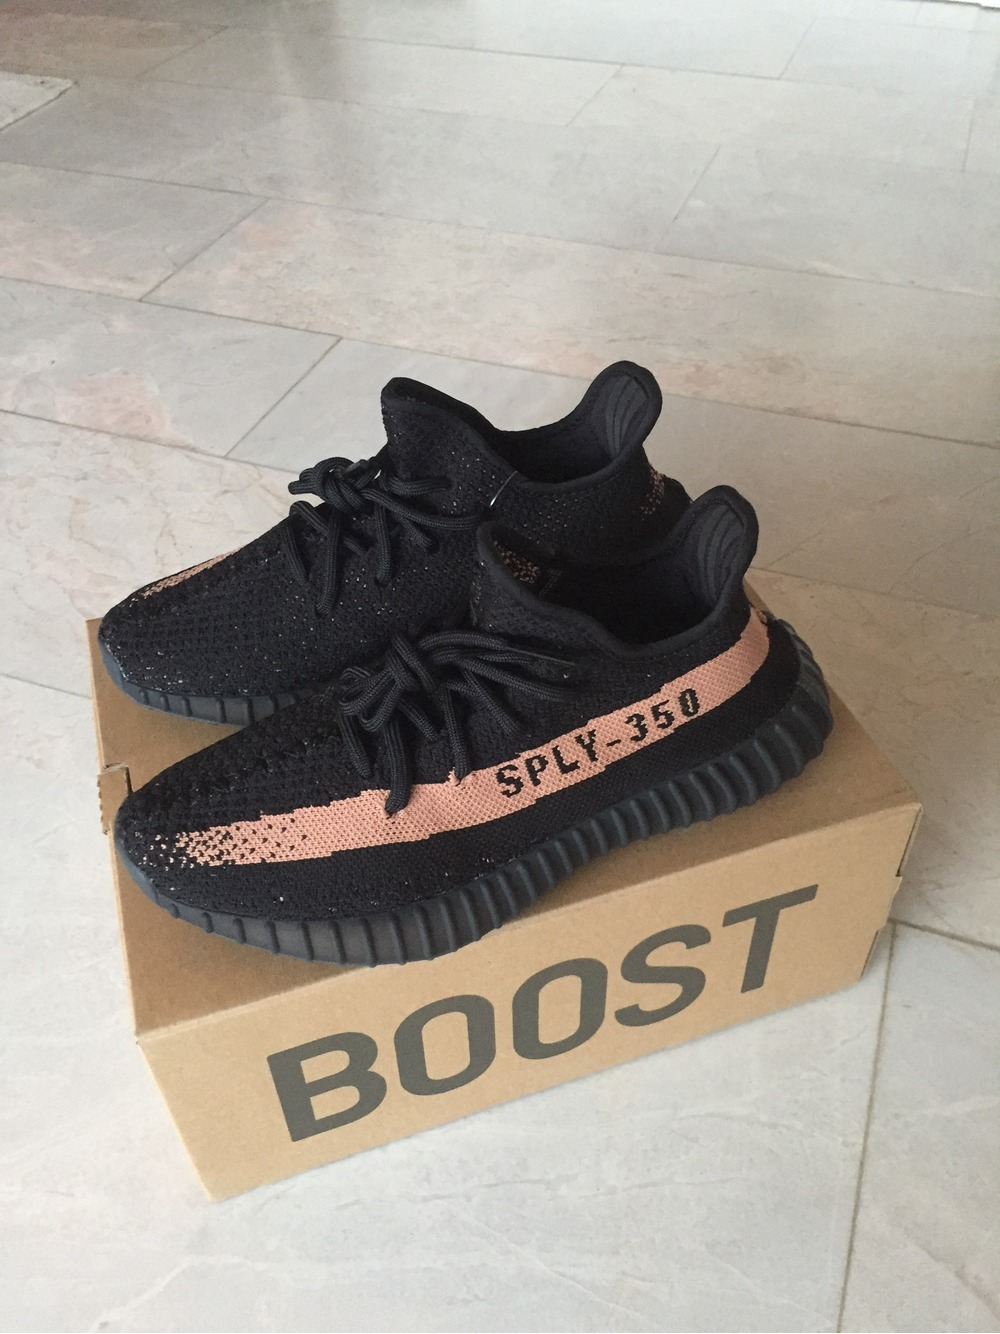 Infant V2 Boost YEEZY 350 V2 yeezysgo.net